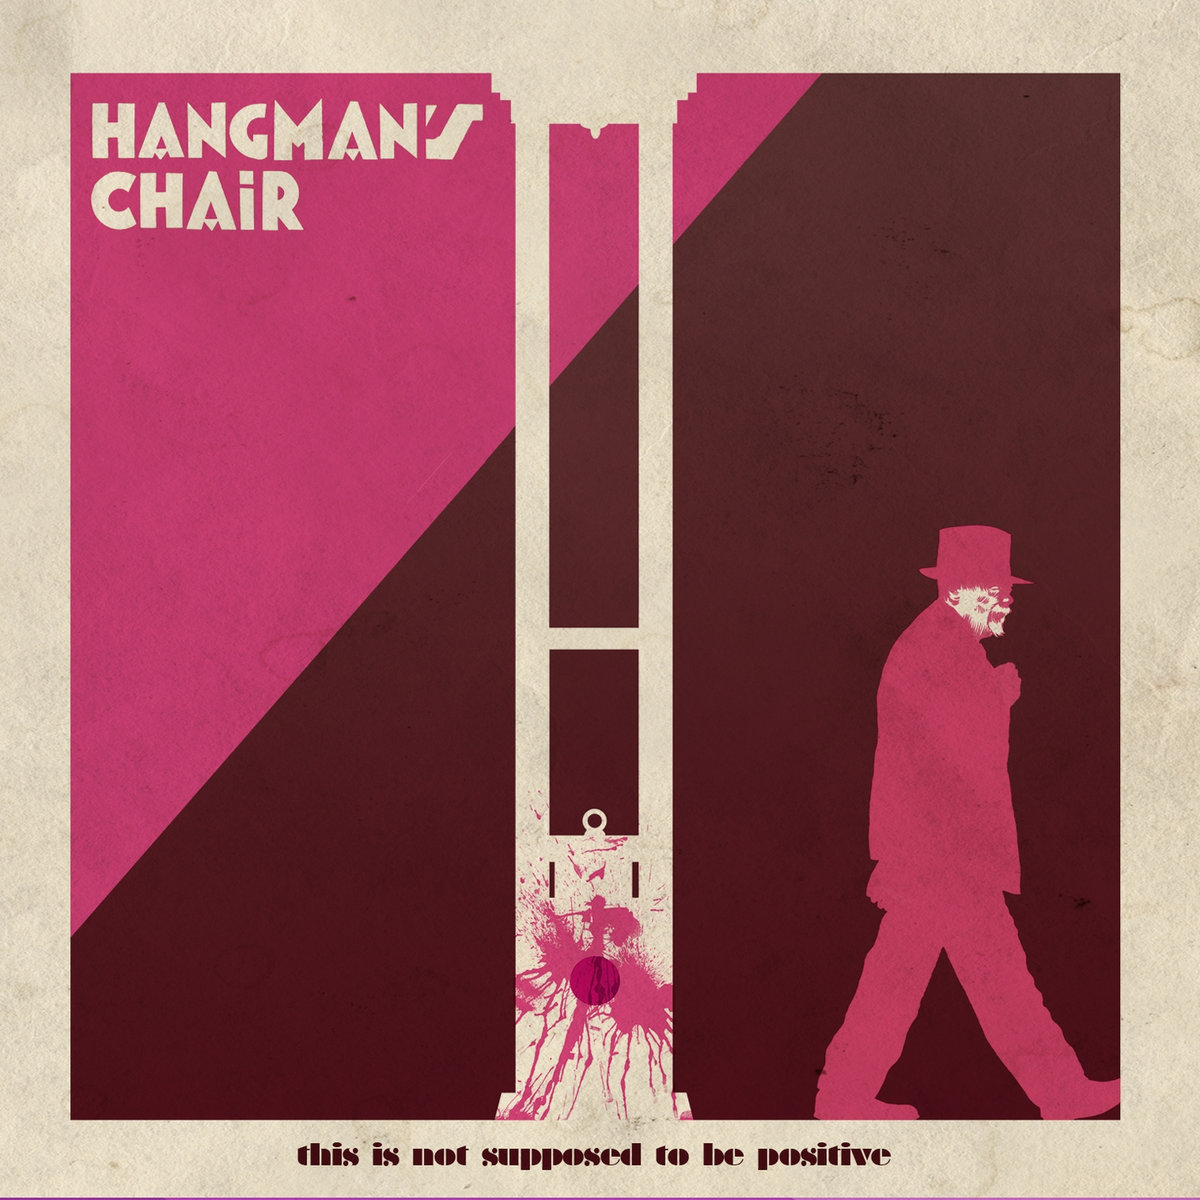 HANGMAN'S CHAIR - This in not supposed to be positive